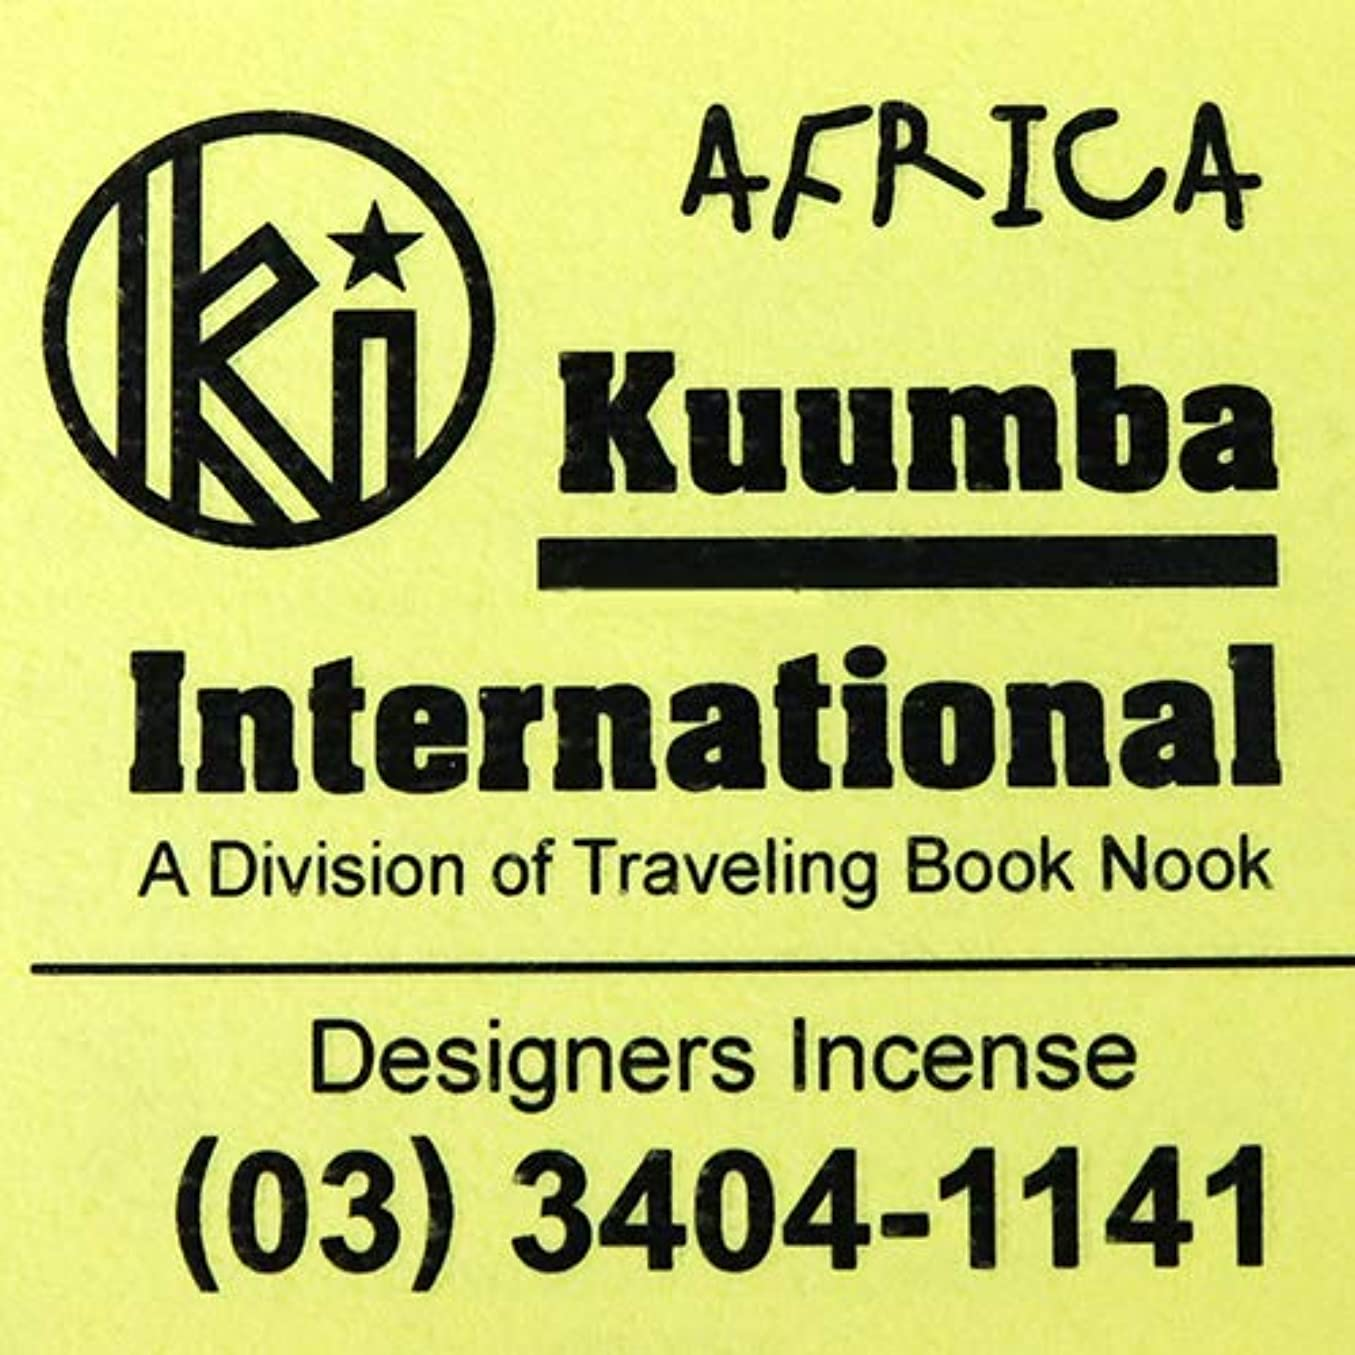 ムス無効にする結び目(クンバ) KUUMBA『incense』(AFRICA) (AFRICA, Regular size)